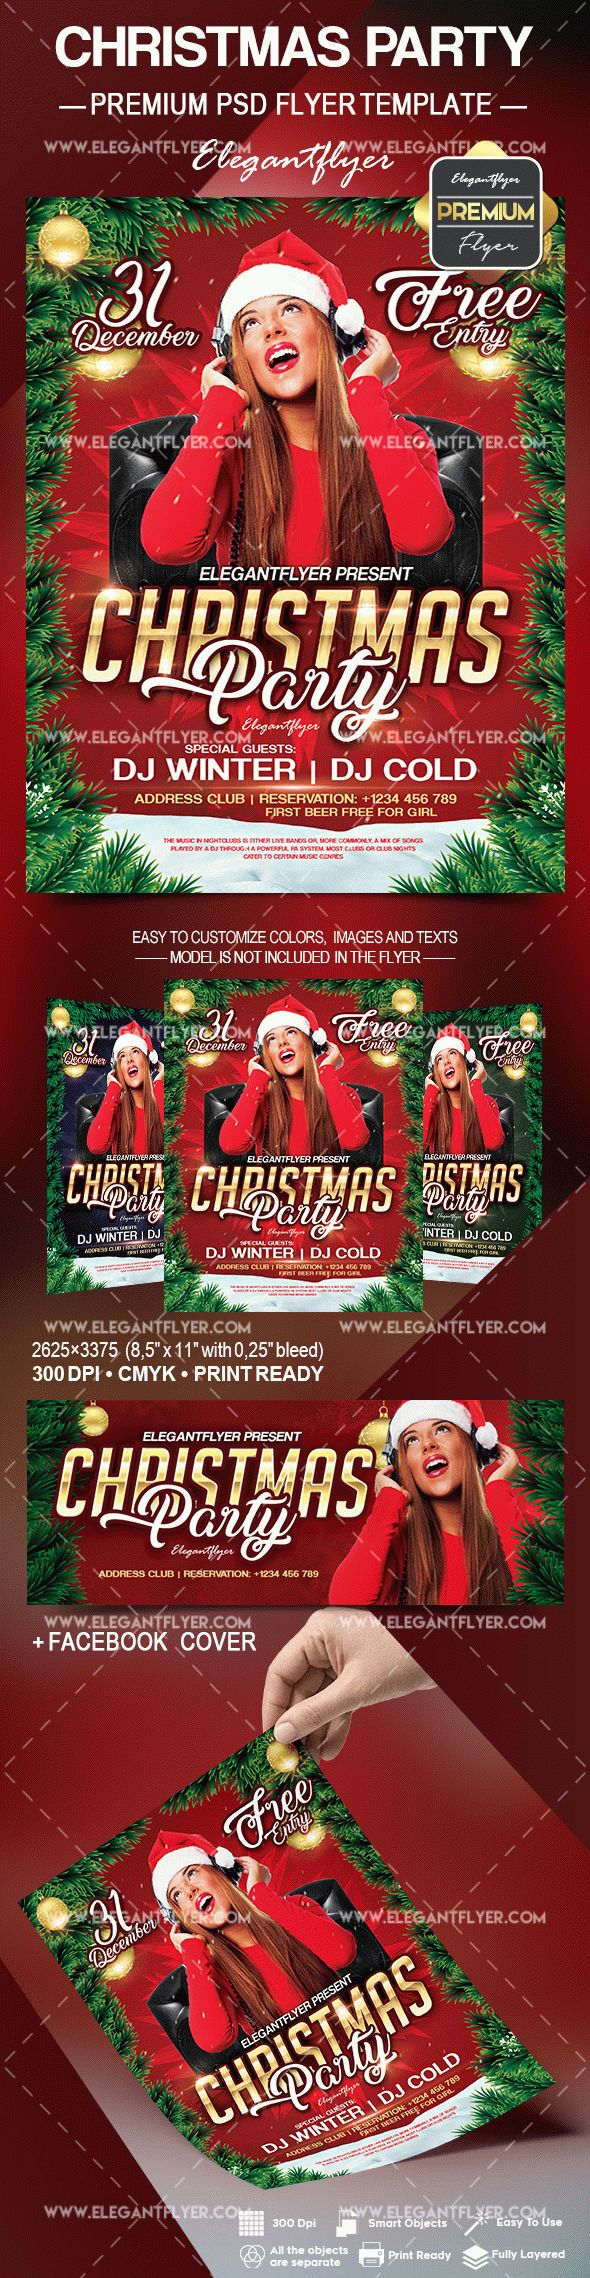 Christmas Music Party Flyer